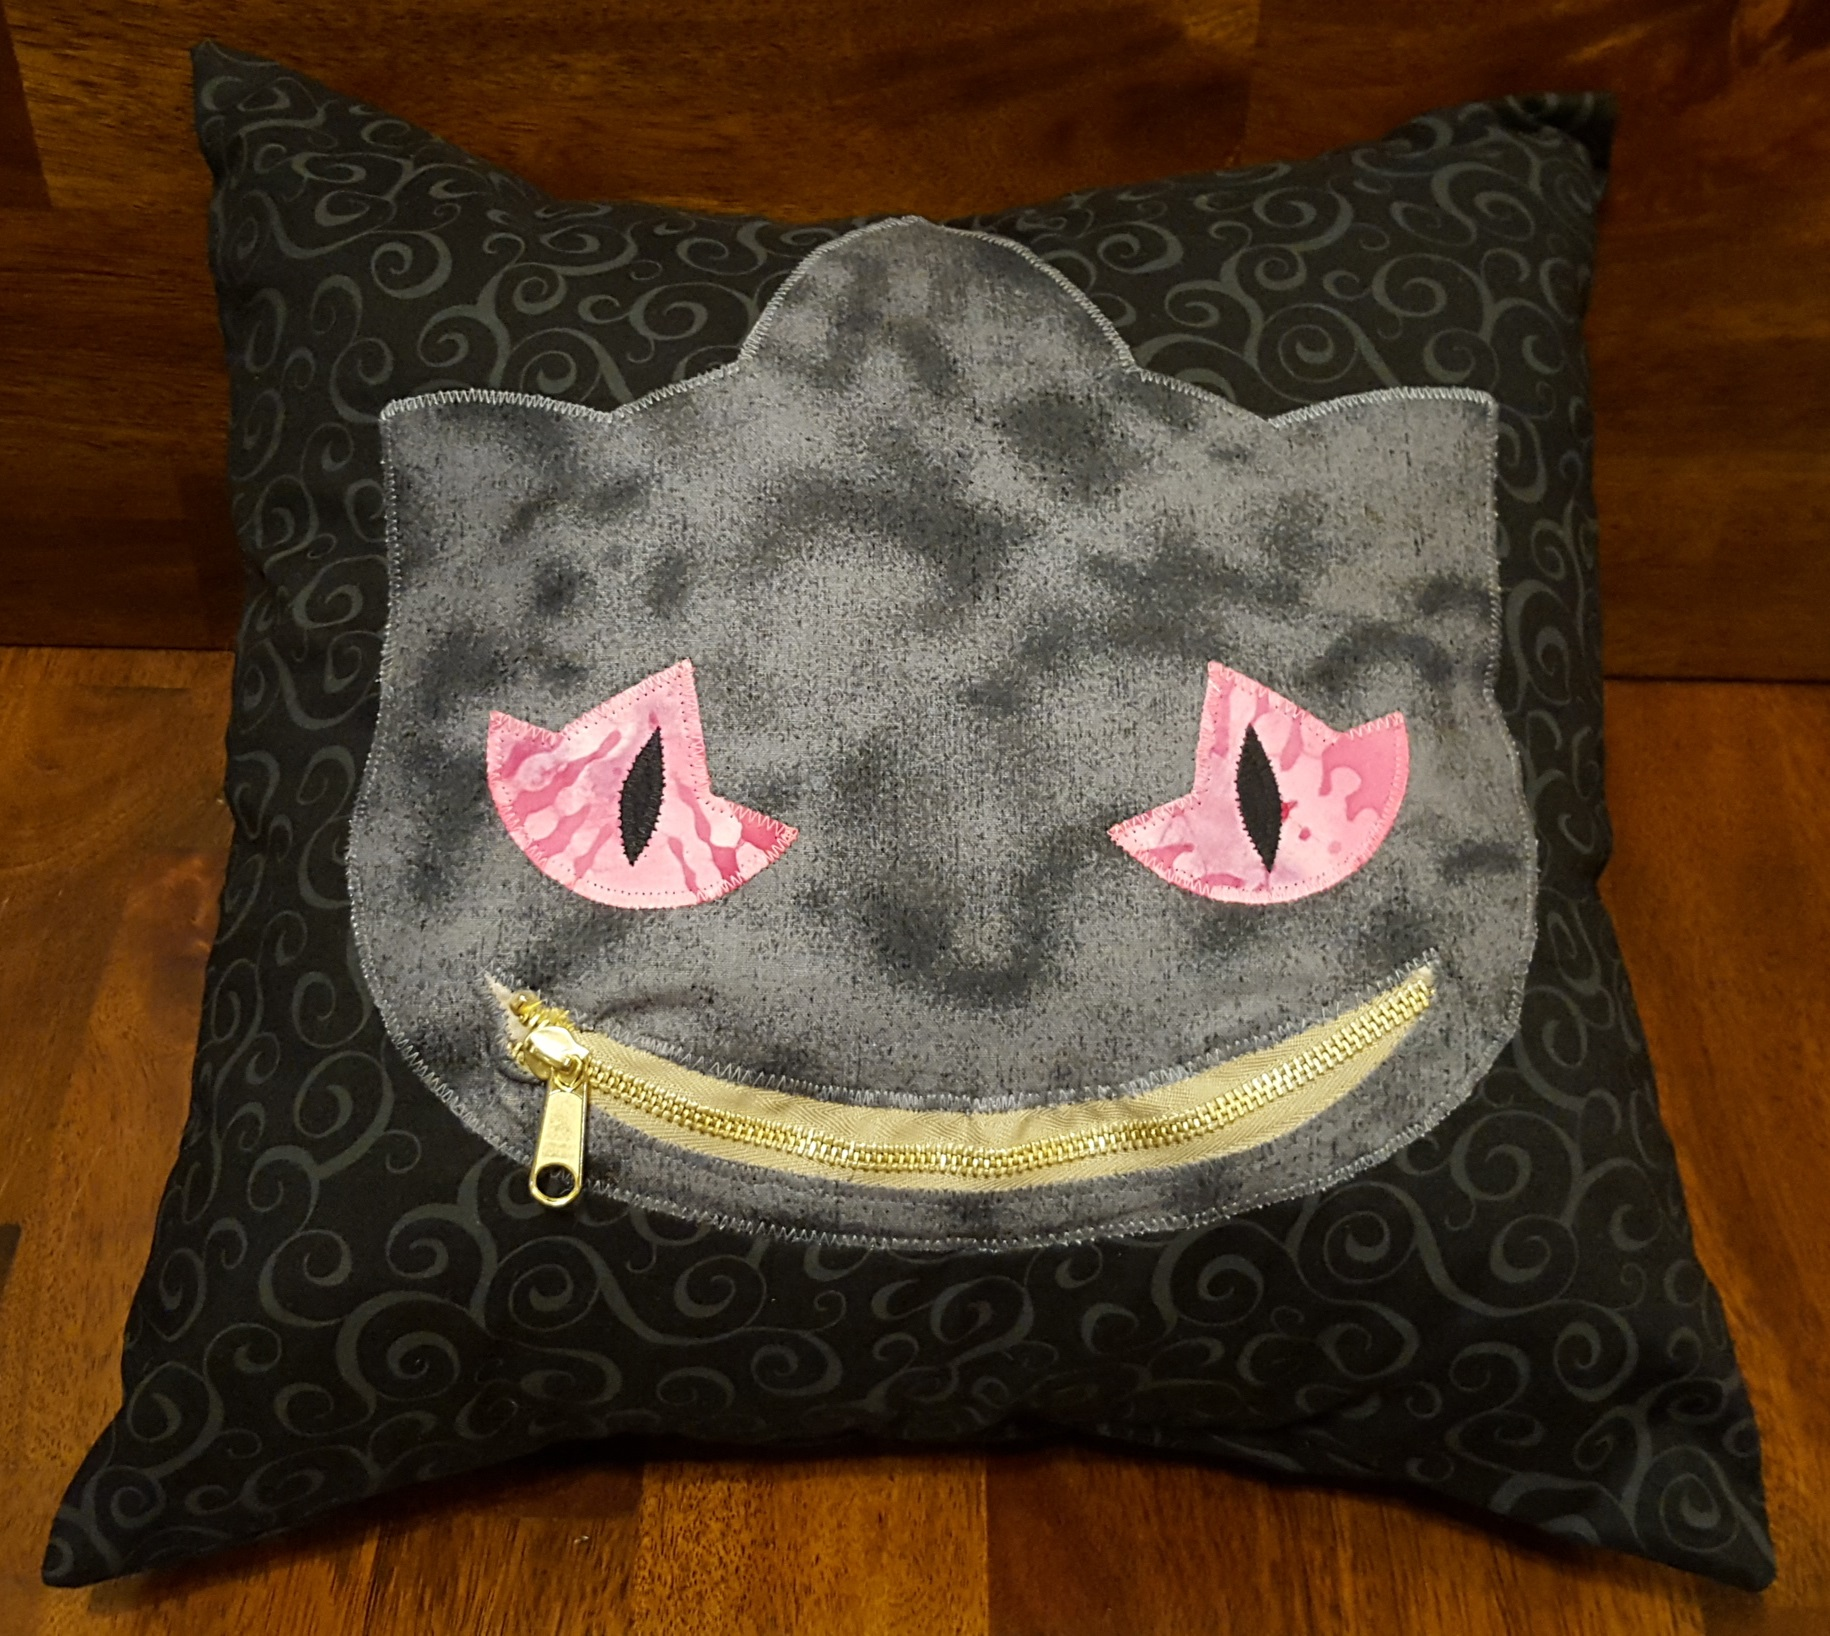 Banette from Pokemon